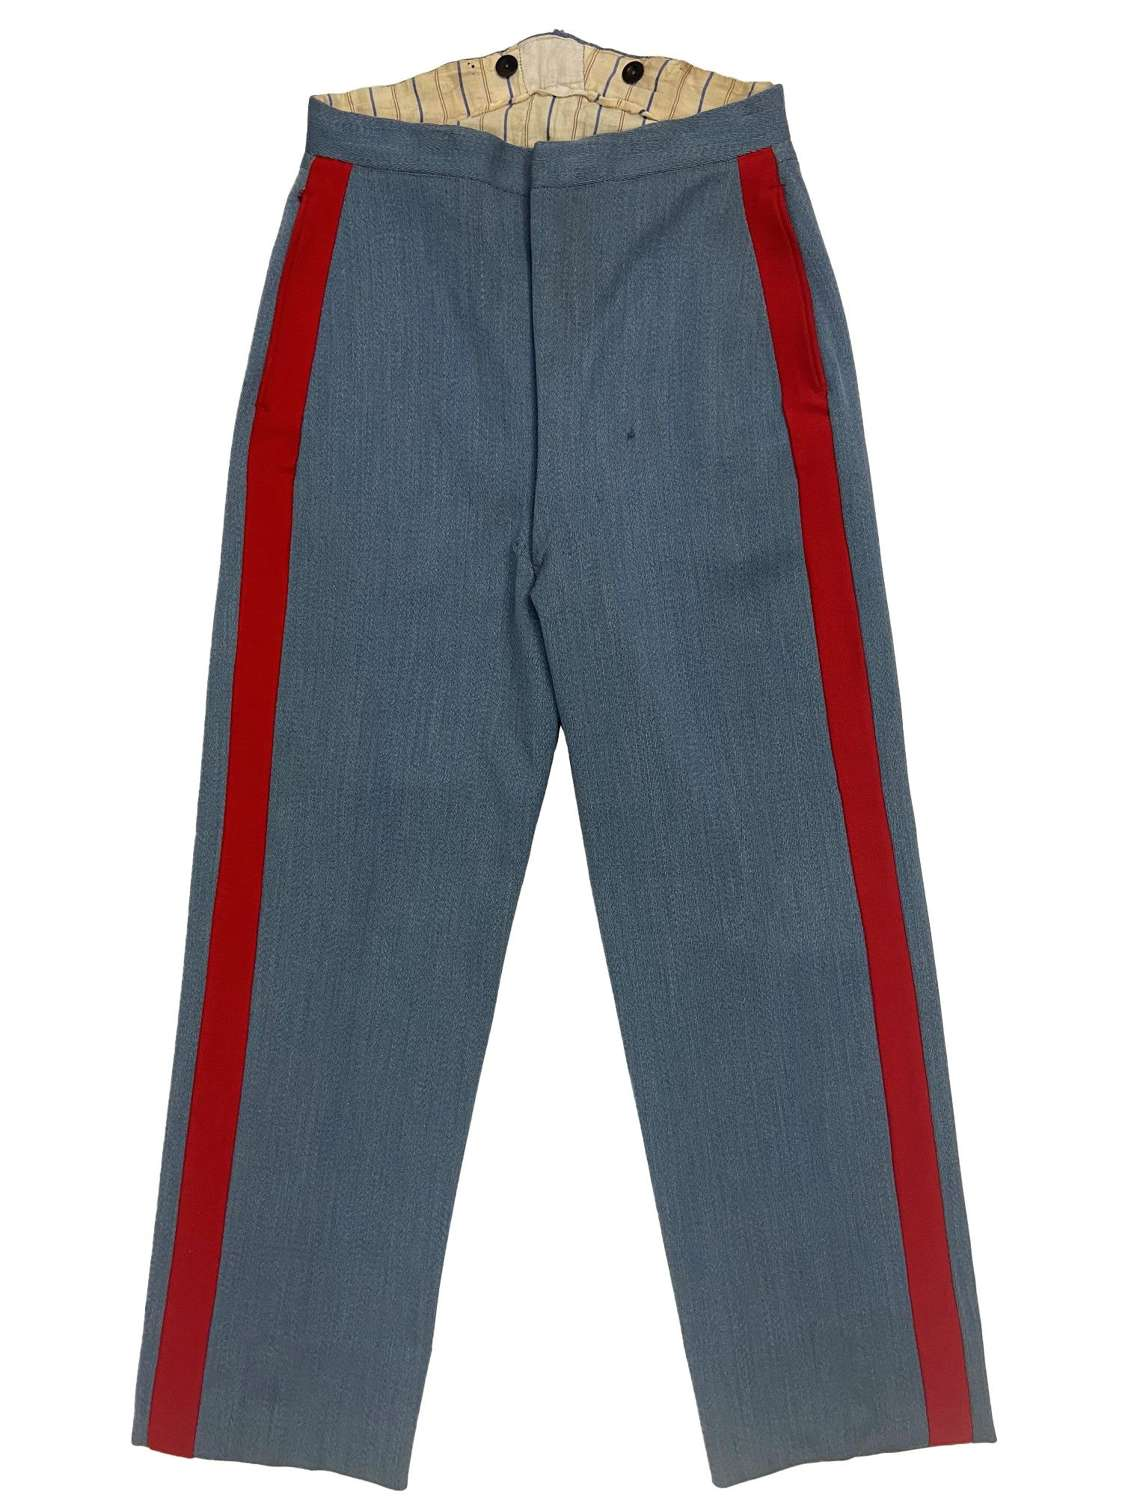 Original Great War Period French Army Officers Trousers